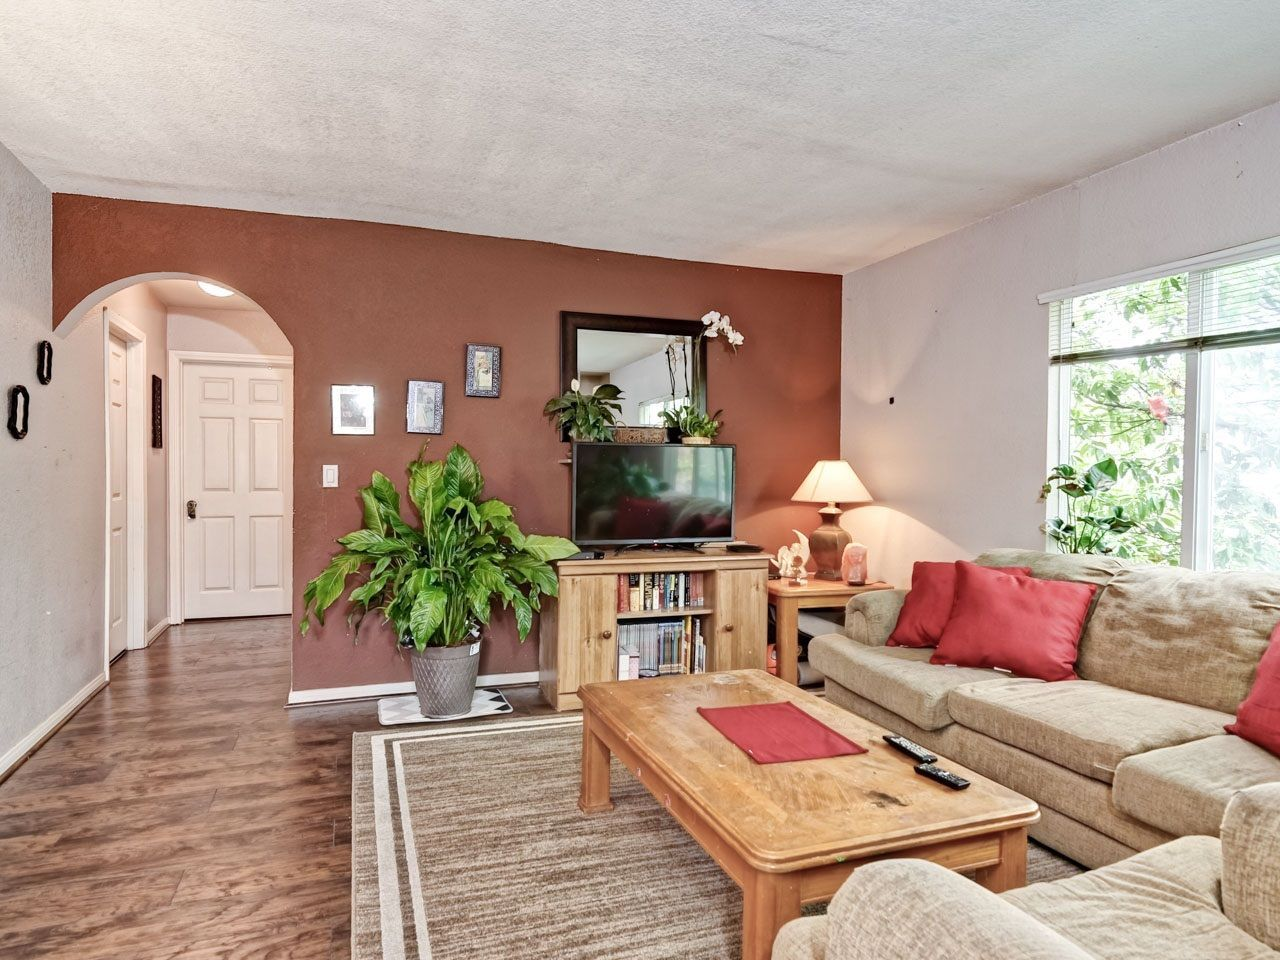 Main Photo: CITY HEIGHTS Condo for sale : 2 bedrooms : 3215 44th St #17 in San Diego